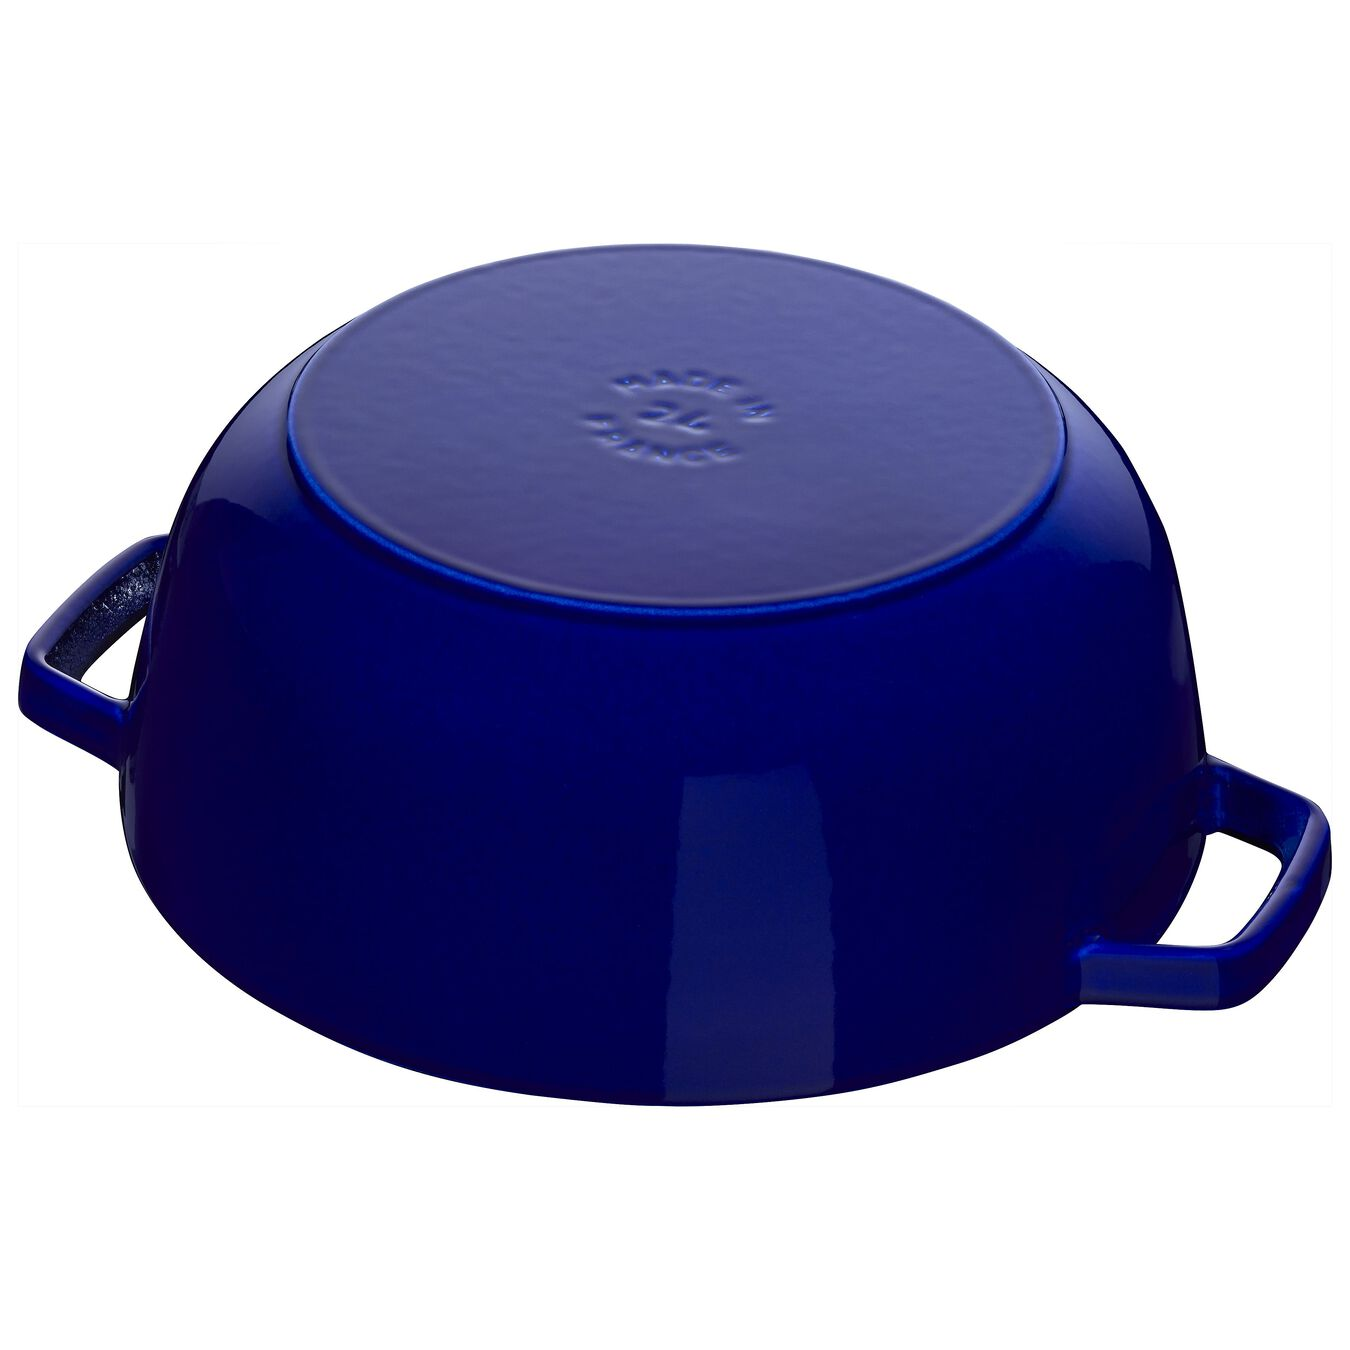 3.5 l Cast iron round French oven, Dark-Blue,,large 4